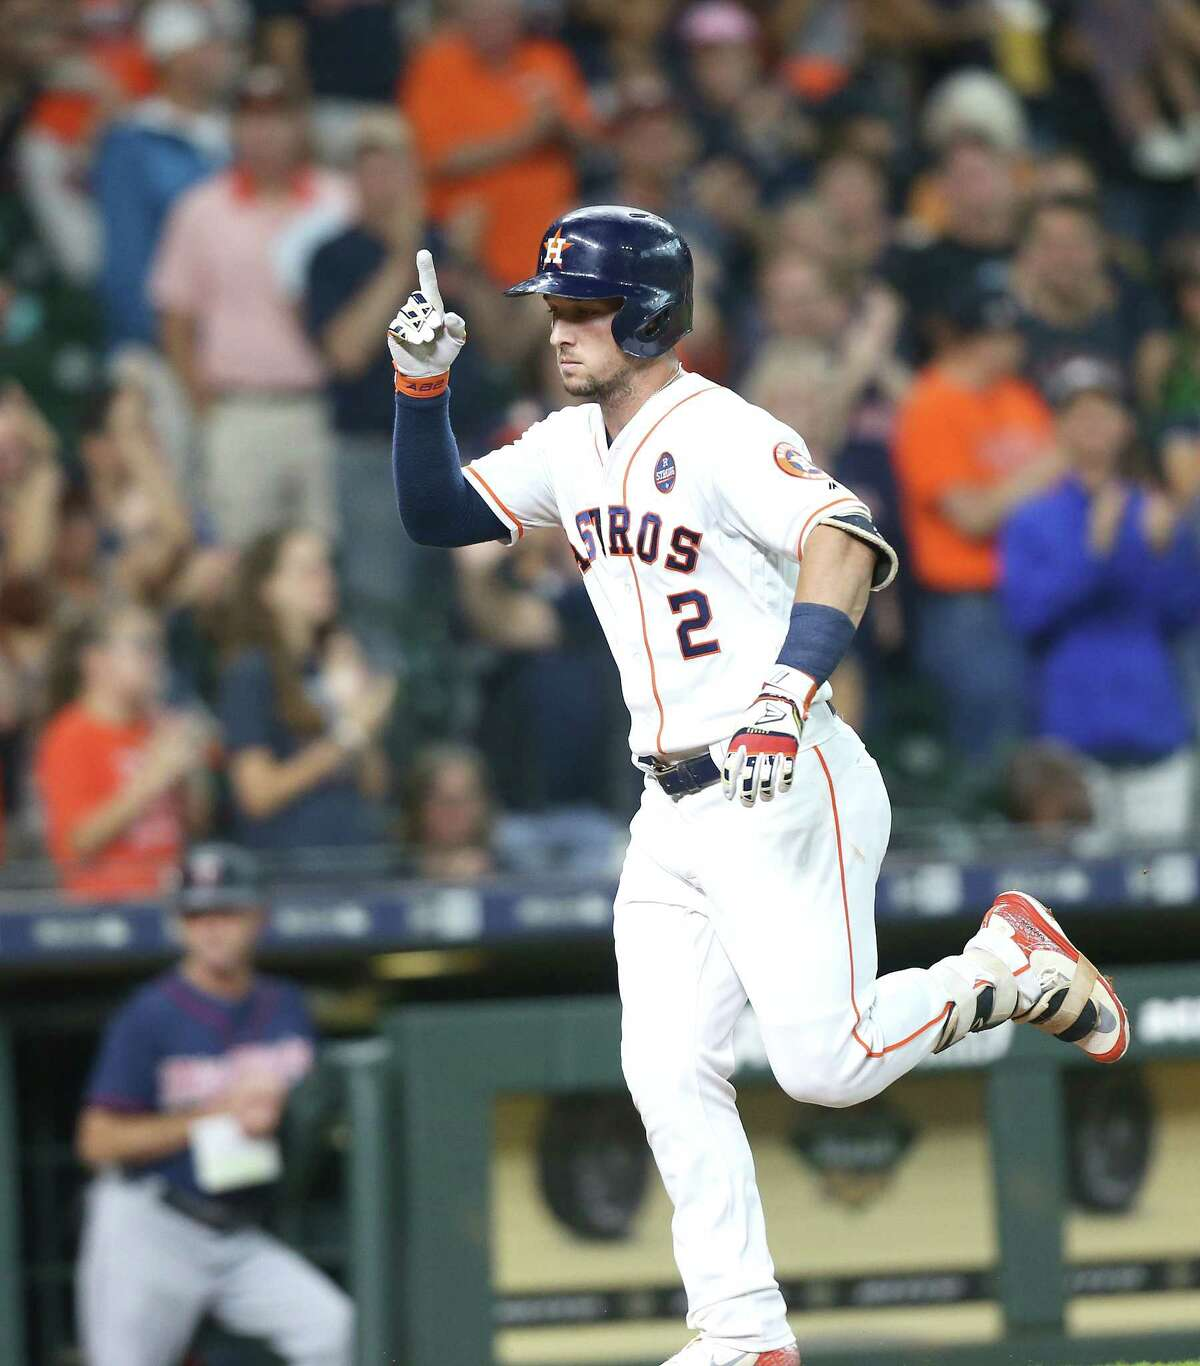 Houston Astros third baseman Alex Bregman (2) reacts after hitting a solo home run in the bottom of the first inning against the Minnesota Twins at Minute Maid Park on Monday, Sept. 3, 2018 in Houston.